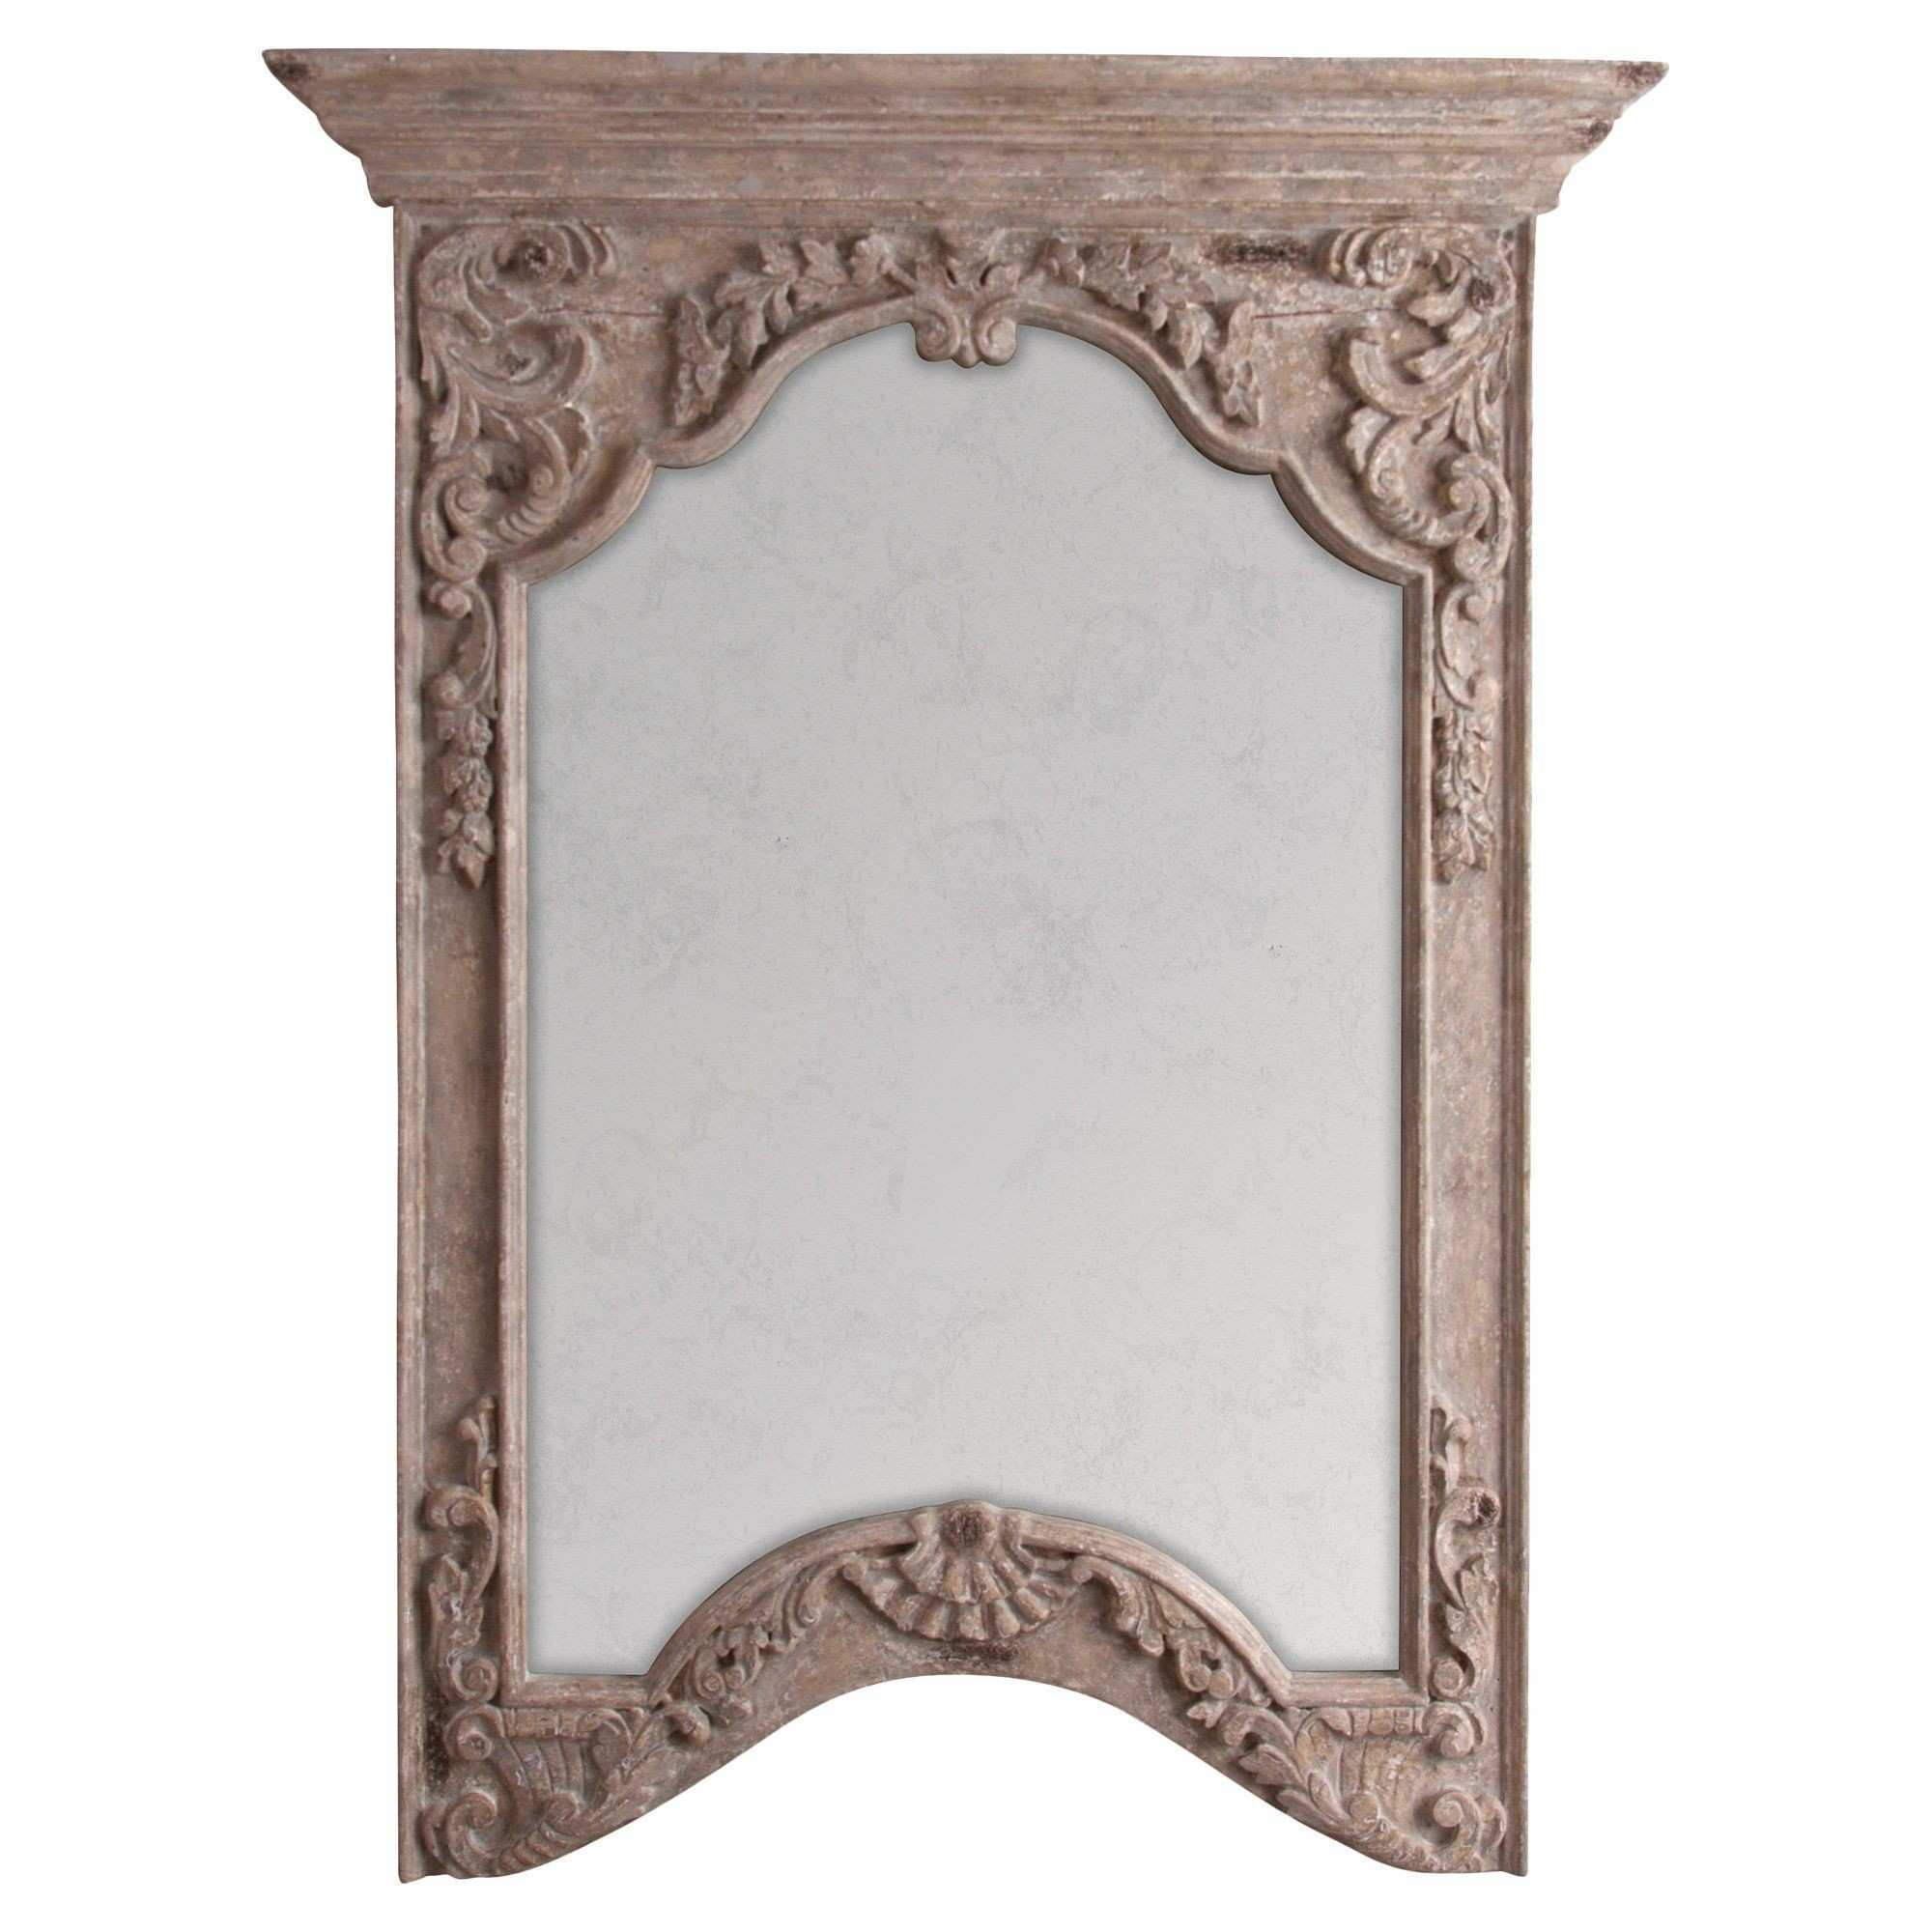 Brunelle French Taupe Antique Finish Floral Relief Wall Mirror